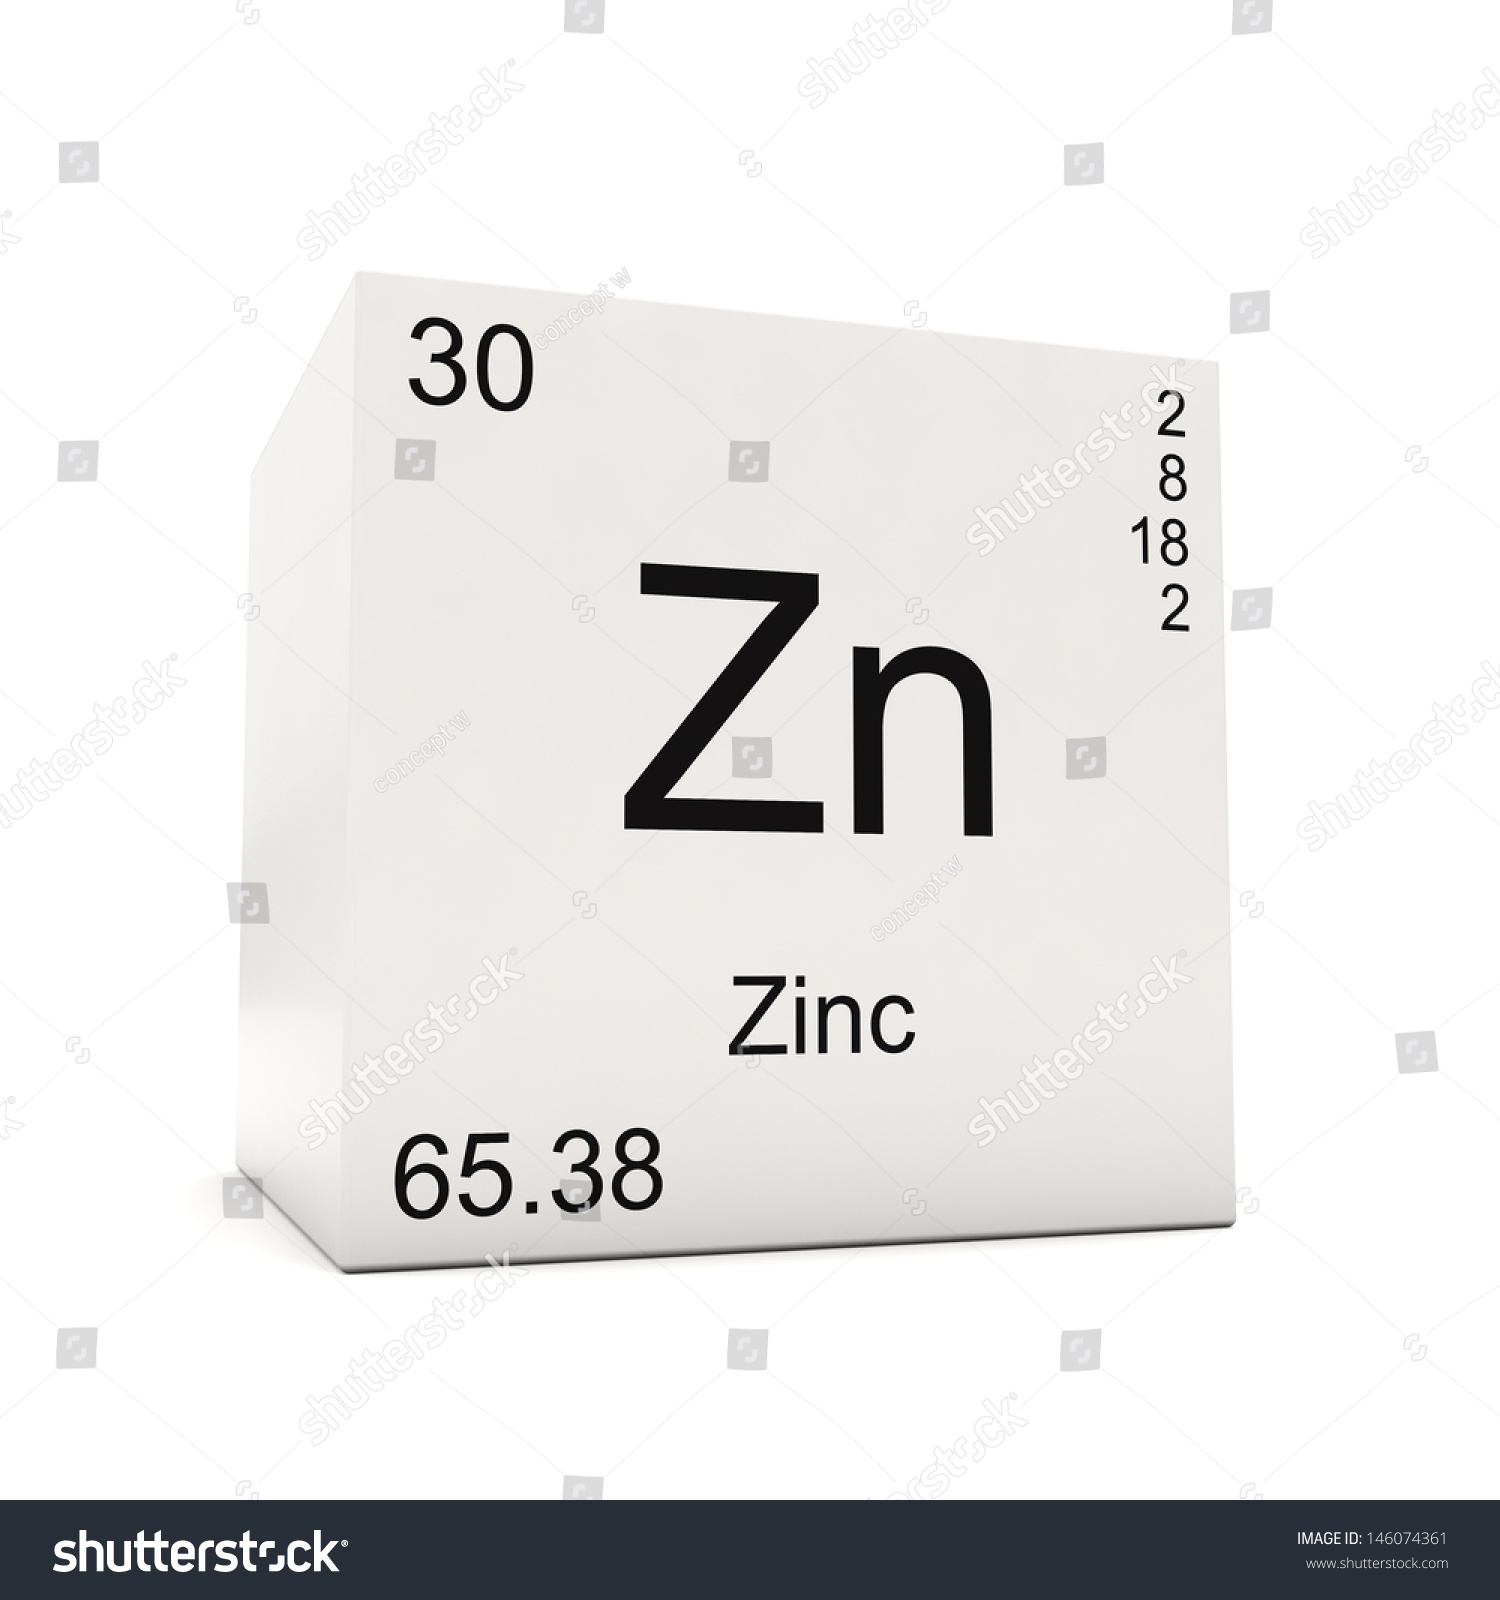 Cube zinc element periodic table isolated stock illustration cube of zinc element of the periodic table isolated on white background gamestrikefo Gallery